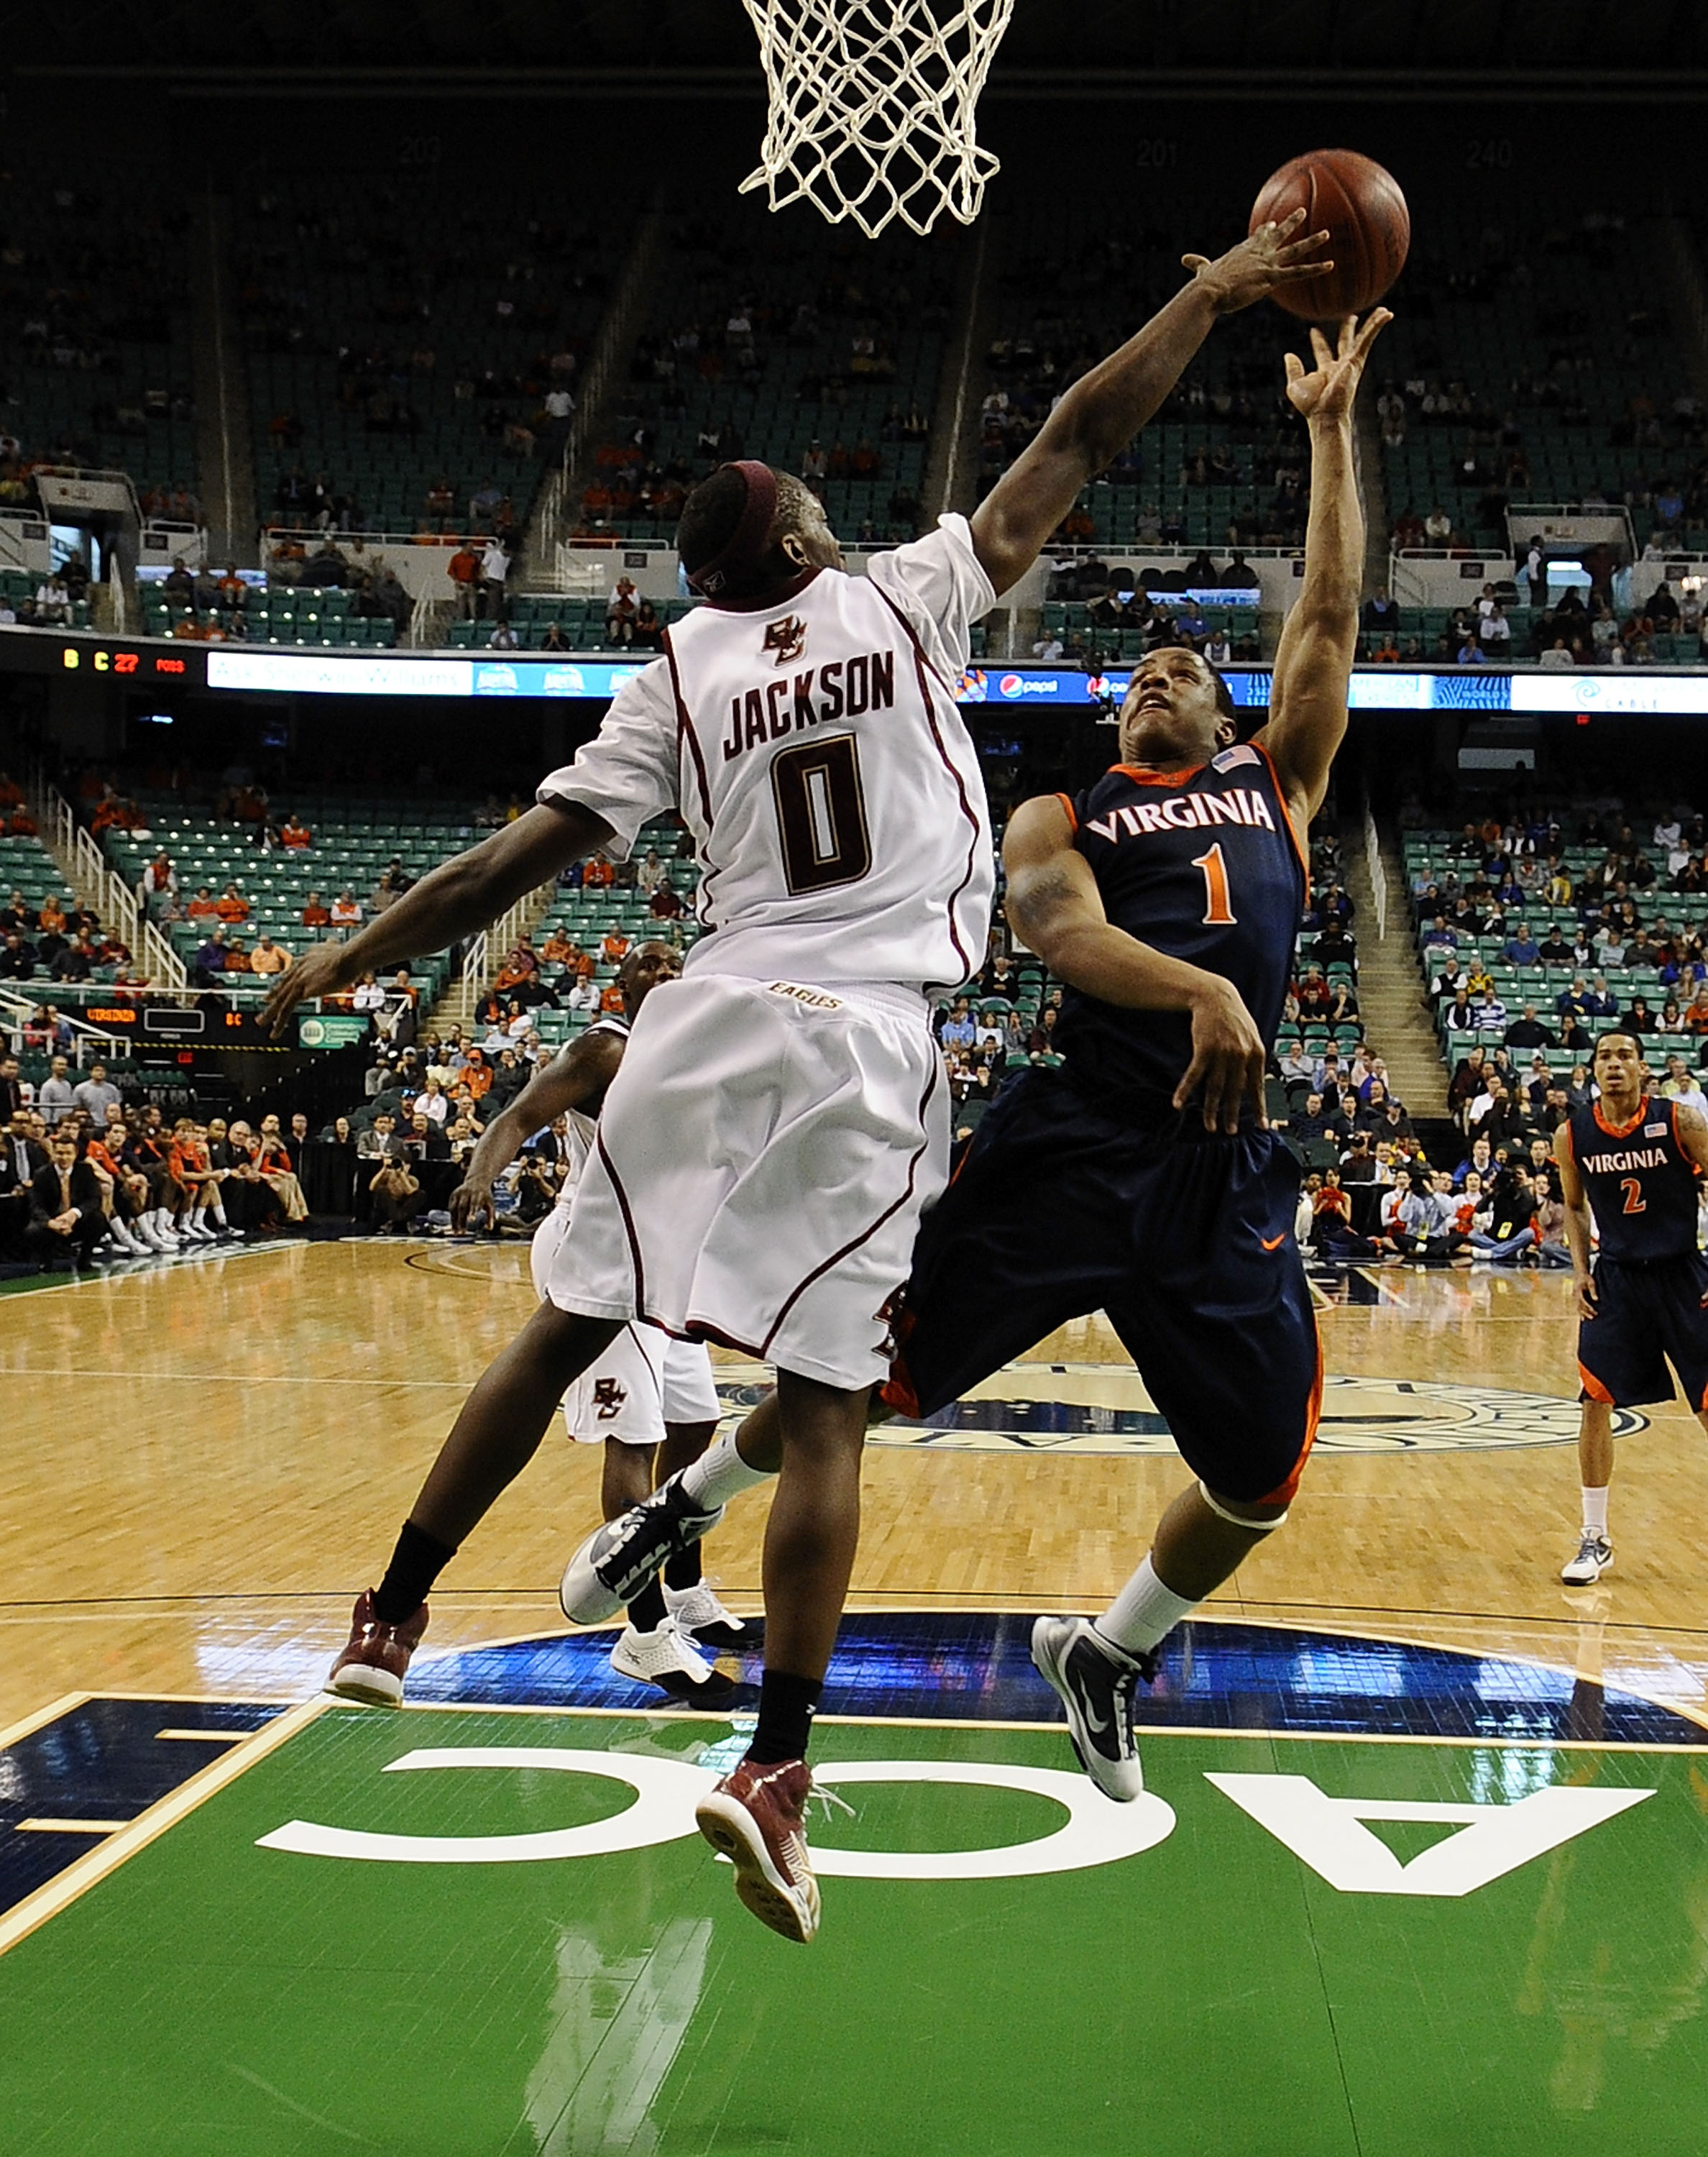 GREENSBORO, NC - MARCH 11:  Reggie Jackson #0 of the Boston College Eagles blocks a shot by Jontel Evans #1 of the University of Virginia Cavaliers in their first round game in the 2010 ACC Men's Basketball Tournament at the Greensboro Coliseum on March 1